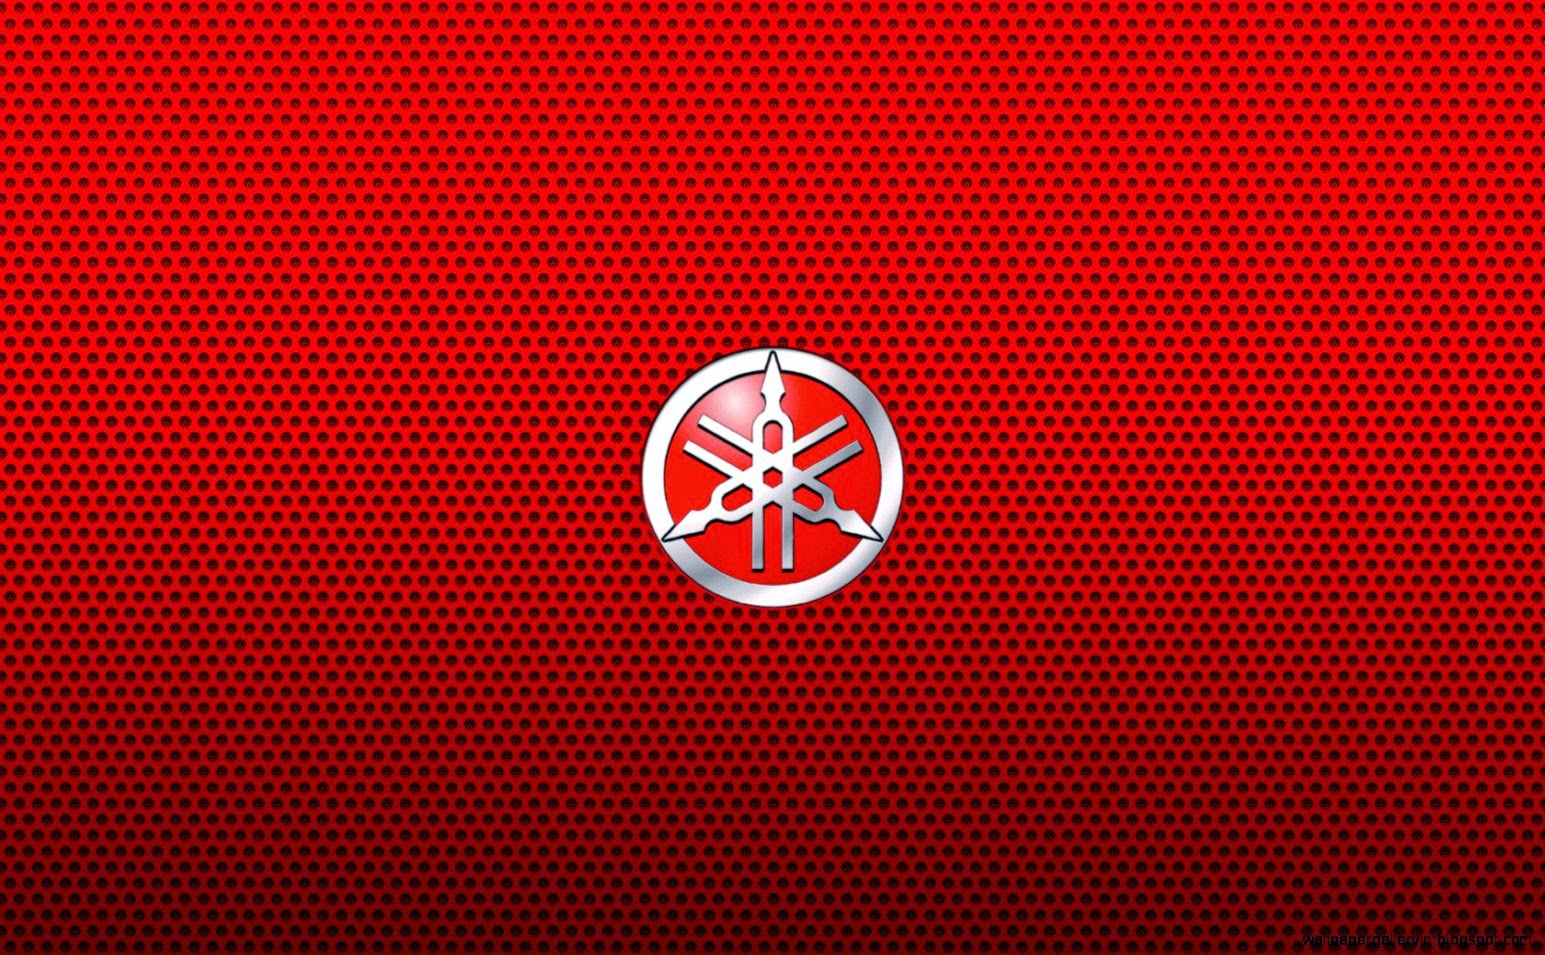 Yamaha Logo Red Wallpapers Hd Yamaha L...